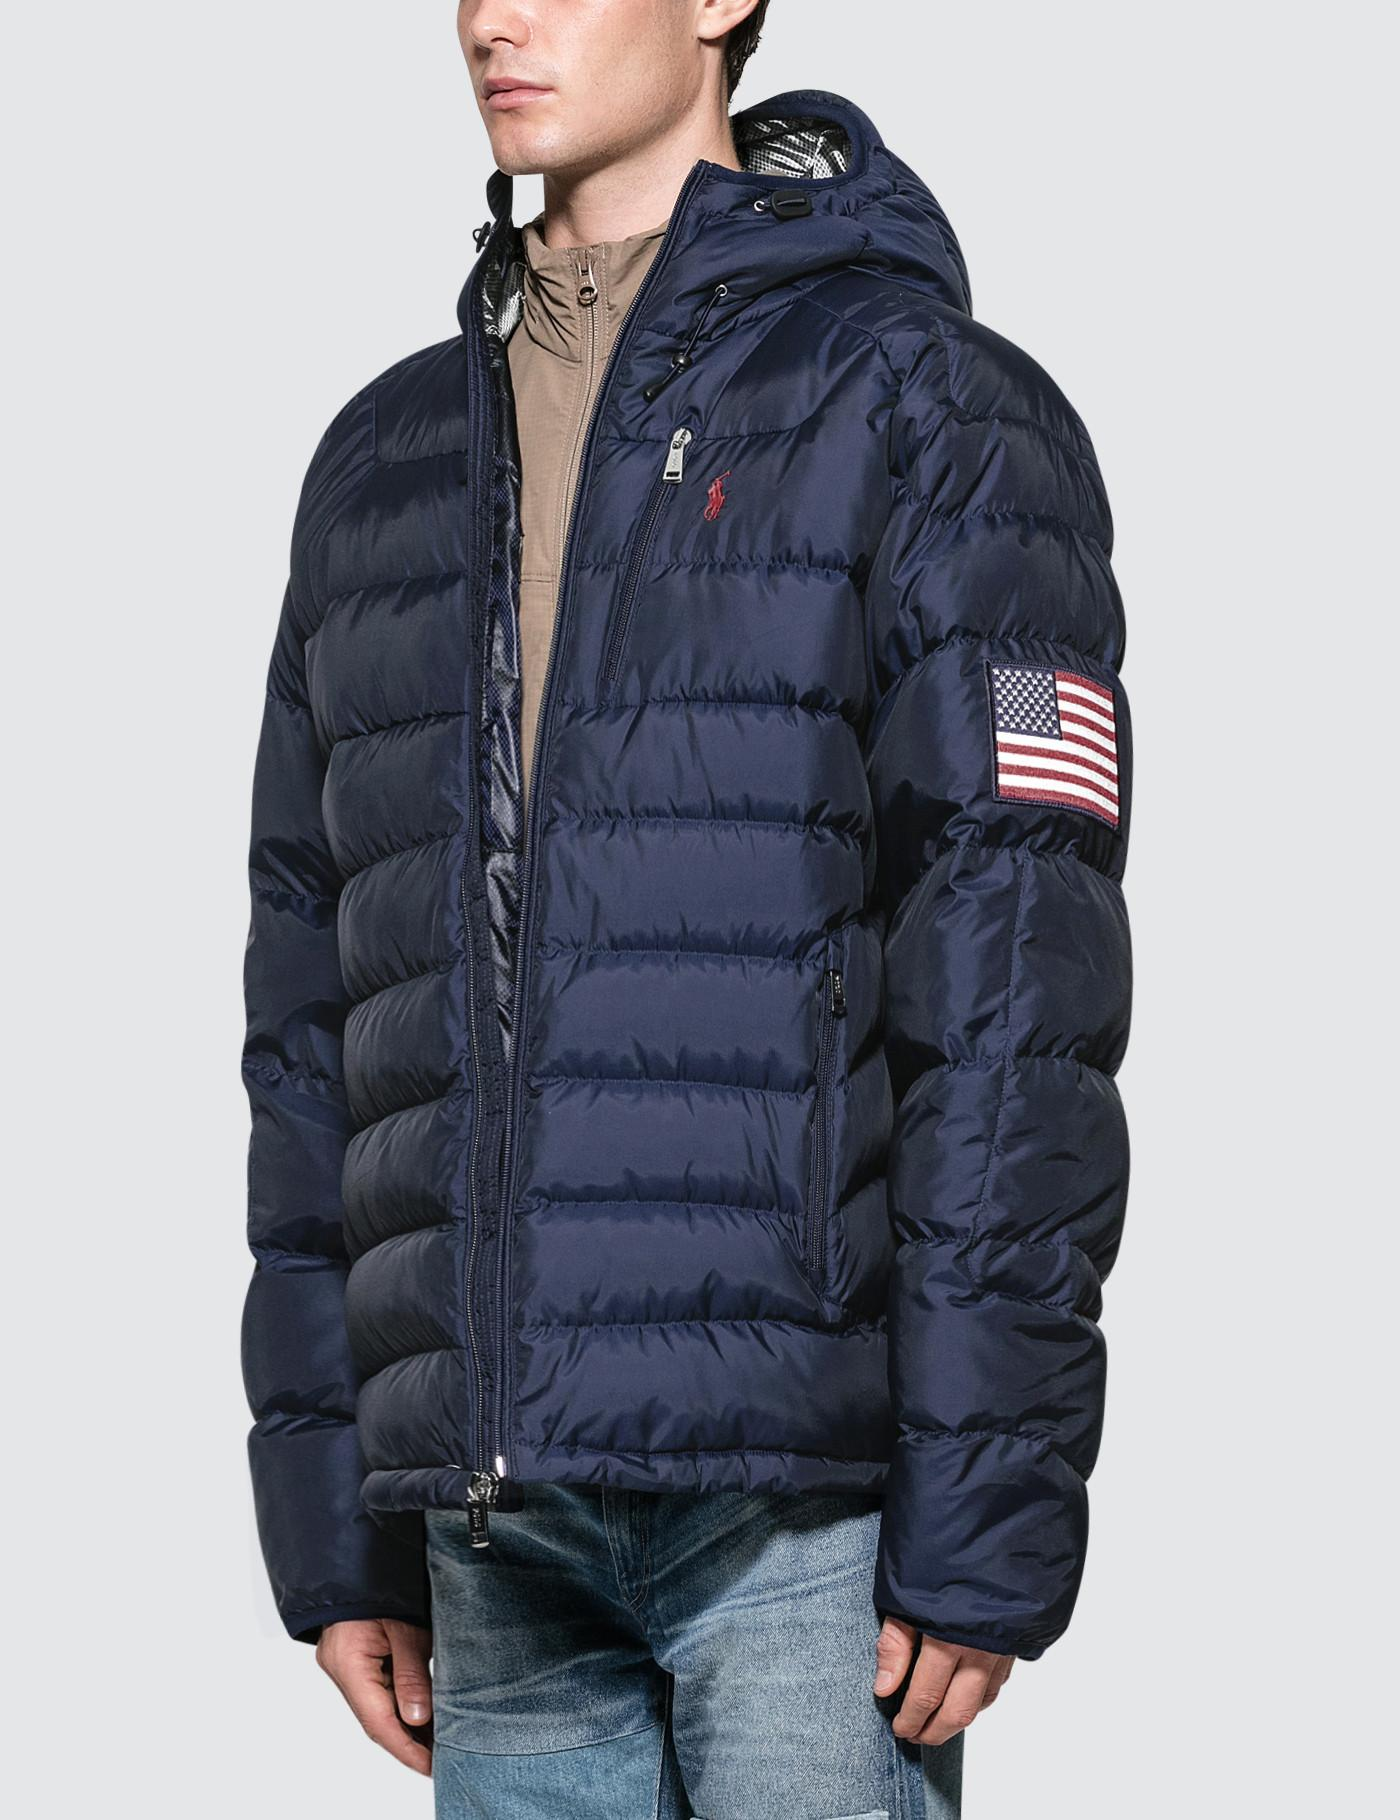 bad61f0d0053 Lyst - Polo Ralph Lauren Glacier Heated Down Jacket in Blue for Men - Save  21%